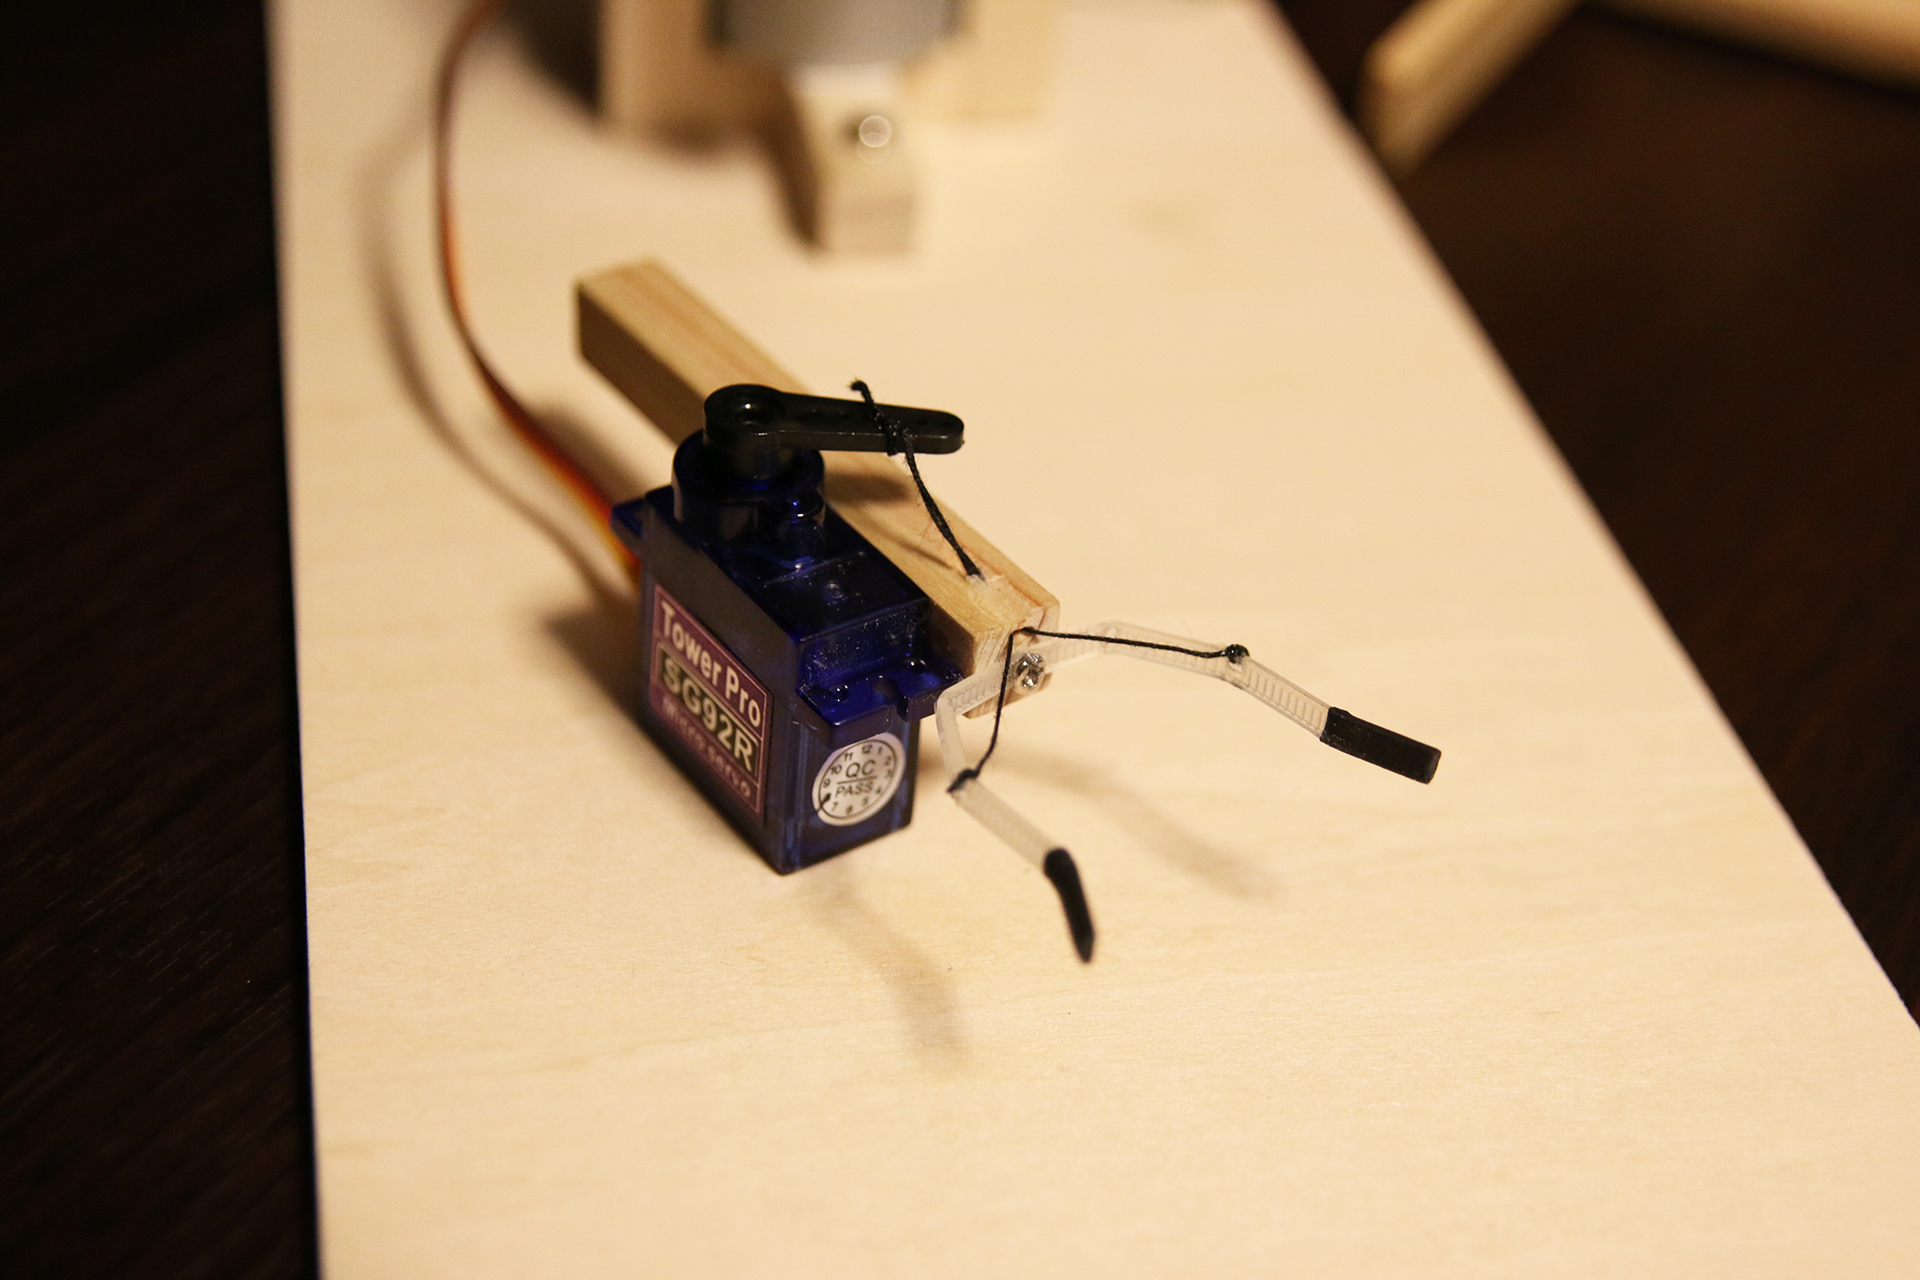 Small Stepper Robot Arm - Electron Dust